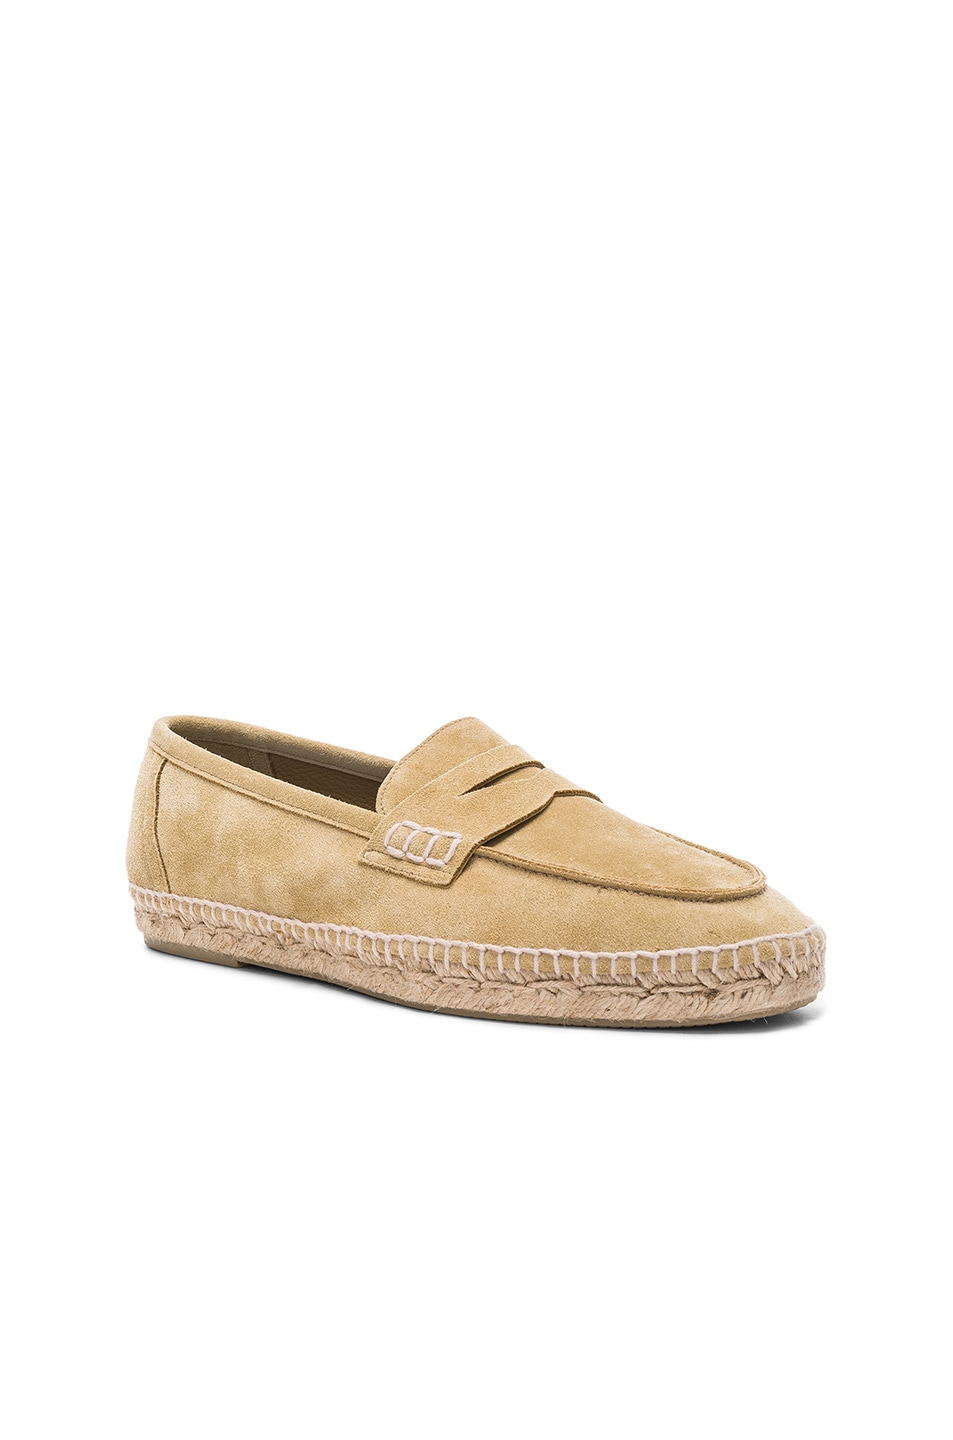 aac297f91 Image 1 of Loewe Suede Loafer Espadrilles in Gold